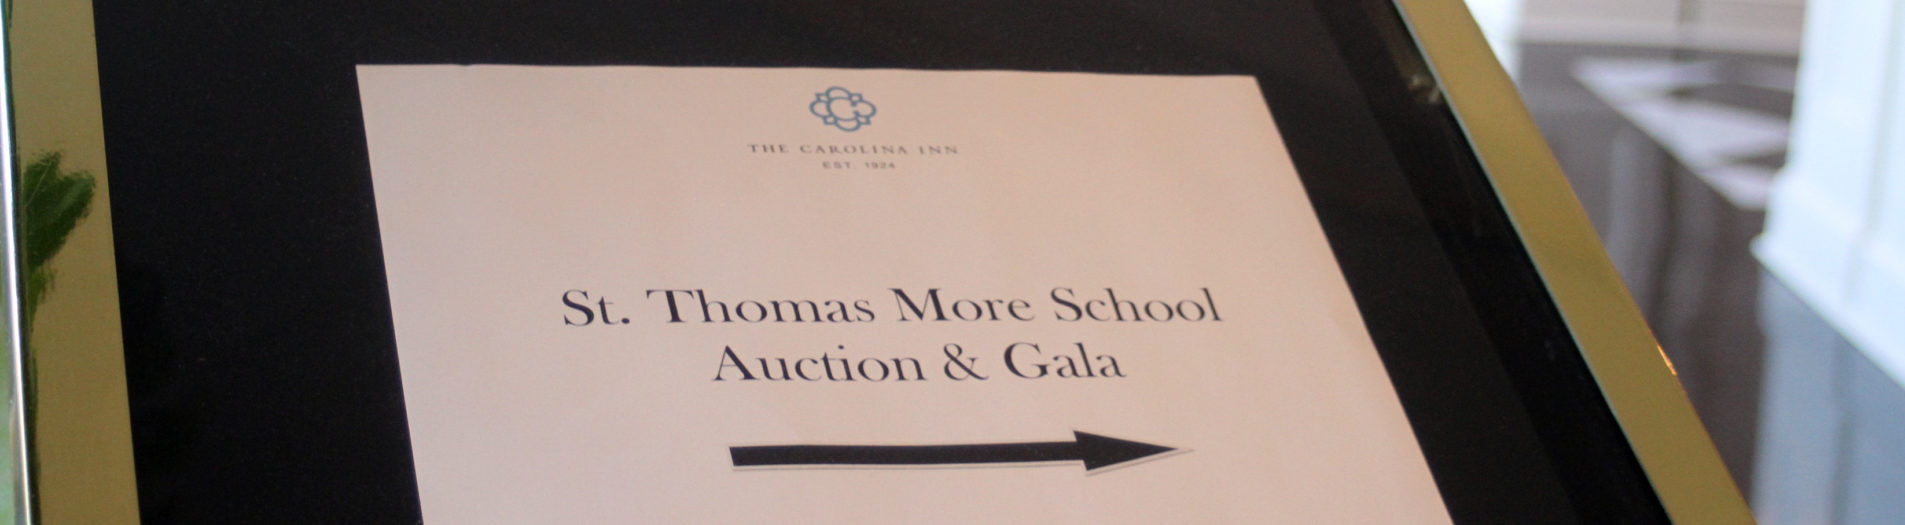 St Thomas More's Gala & Auction at Carolina Inn was a hit!